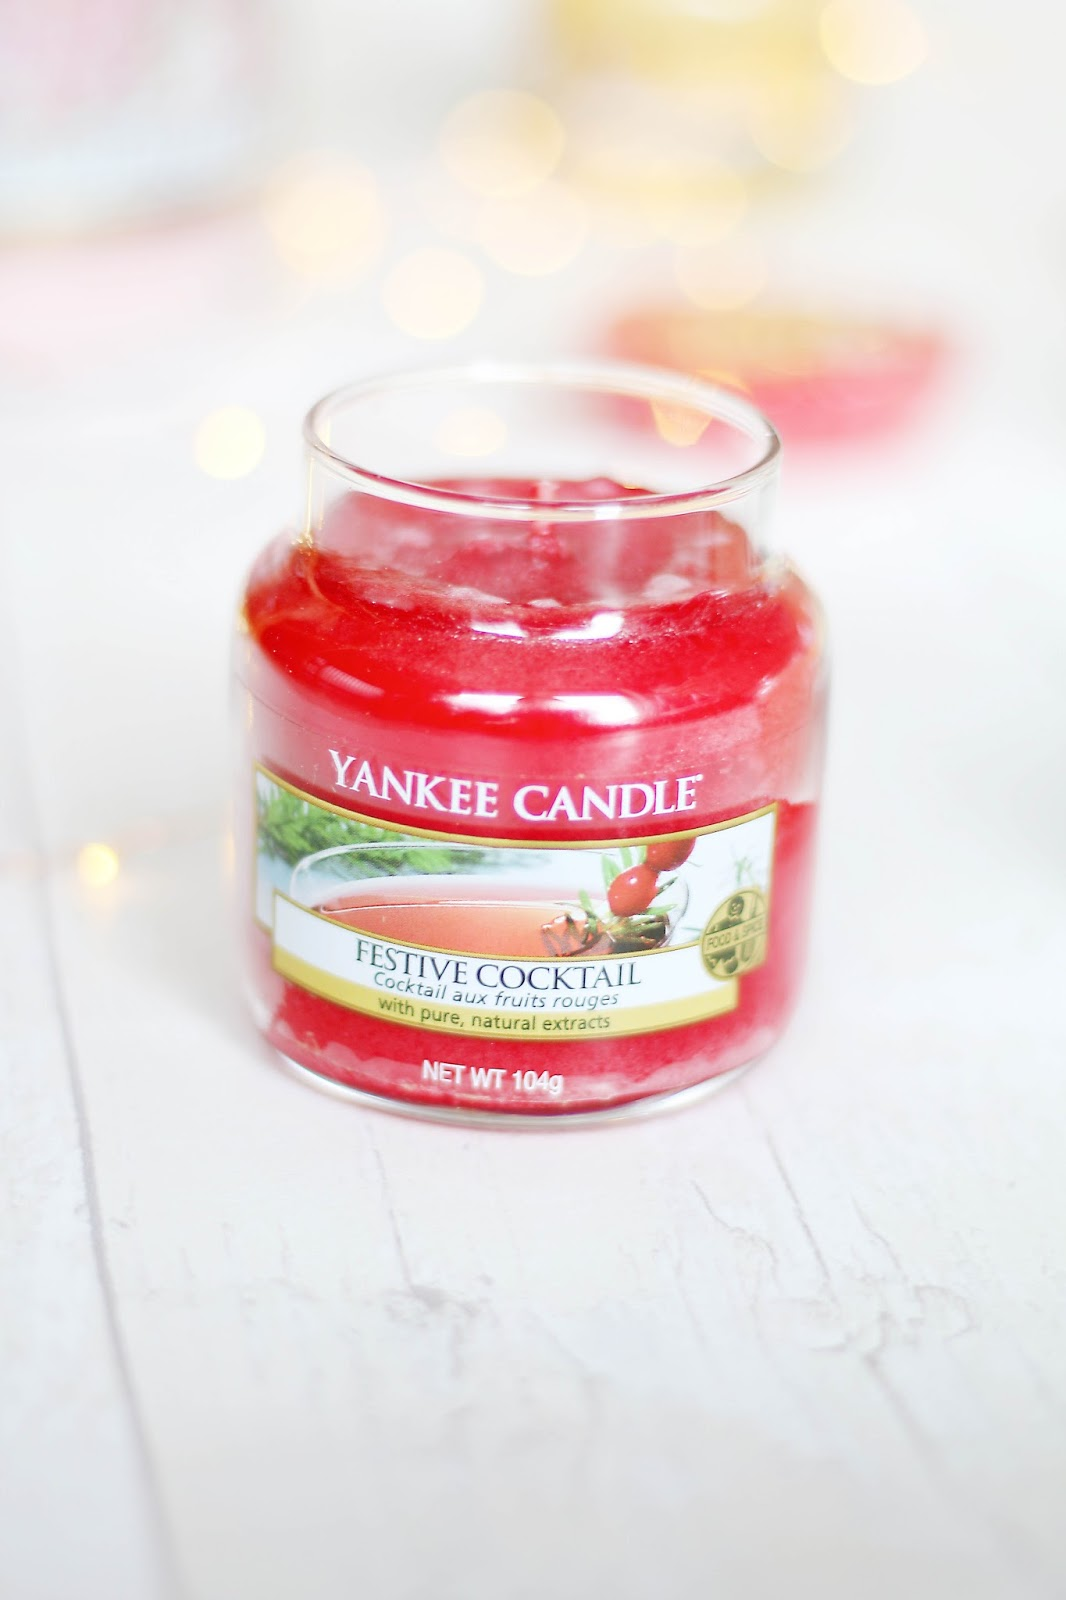 xChristmas, Lifestyle, Blogmas, Home, Fragrance, home decor, Yankee candles, best christmas candles, christmas candles, christmas candles for the home, yankee candle, yankee candle christmas